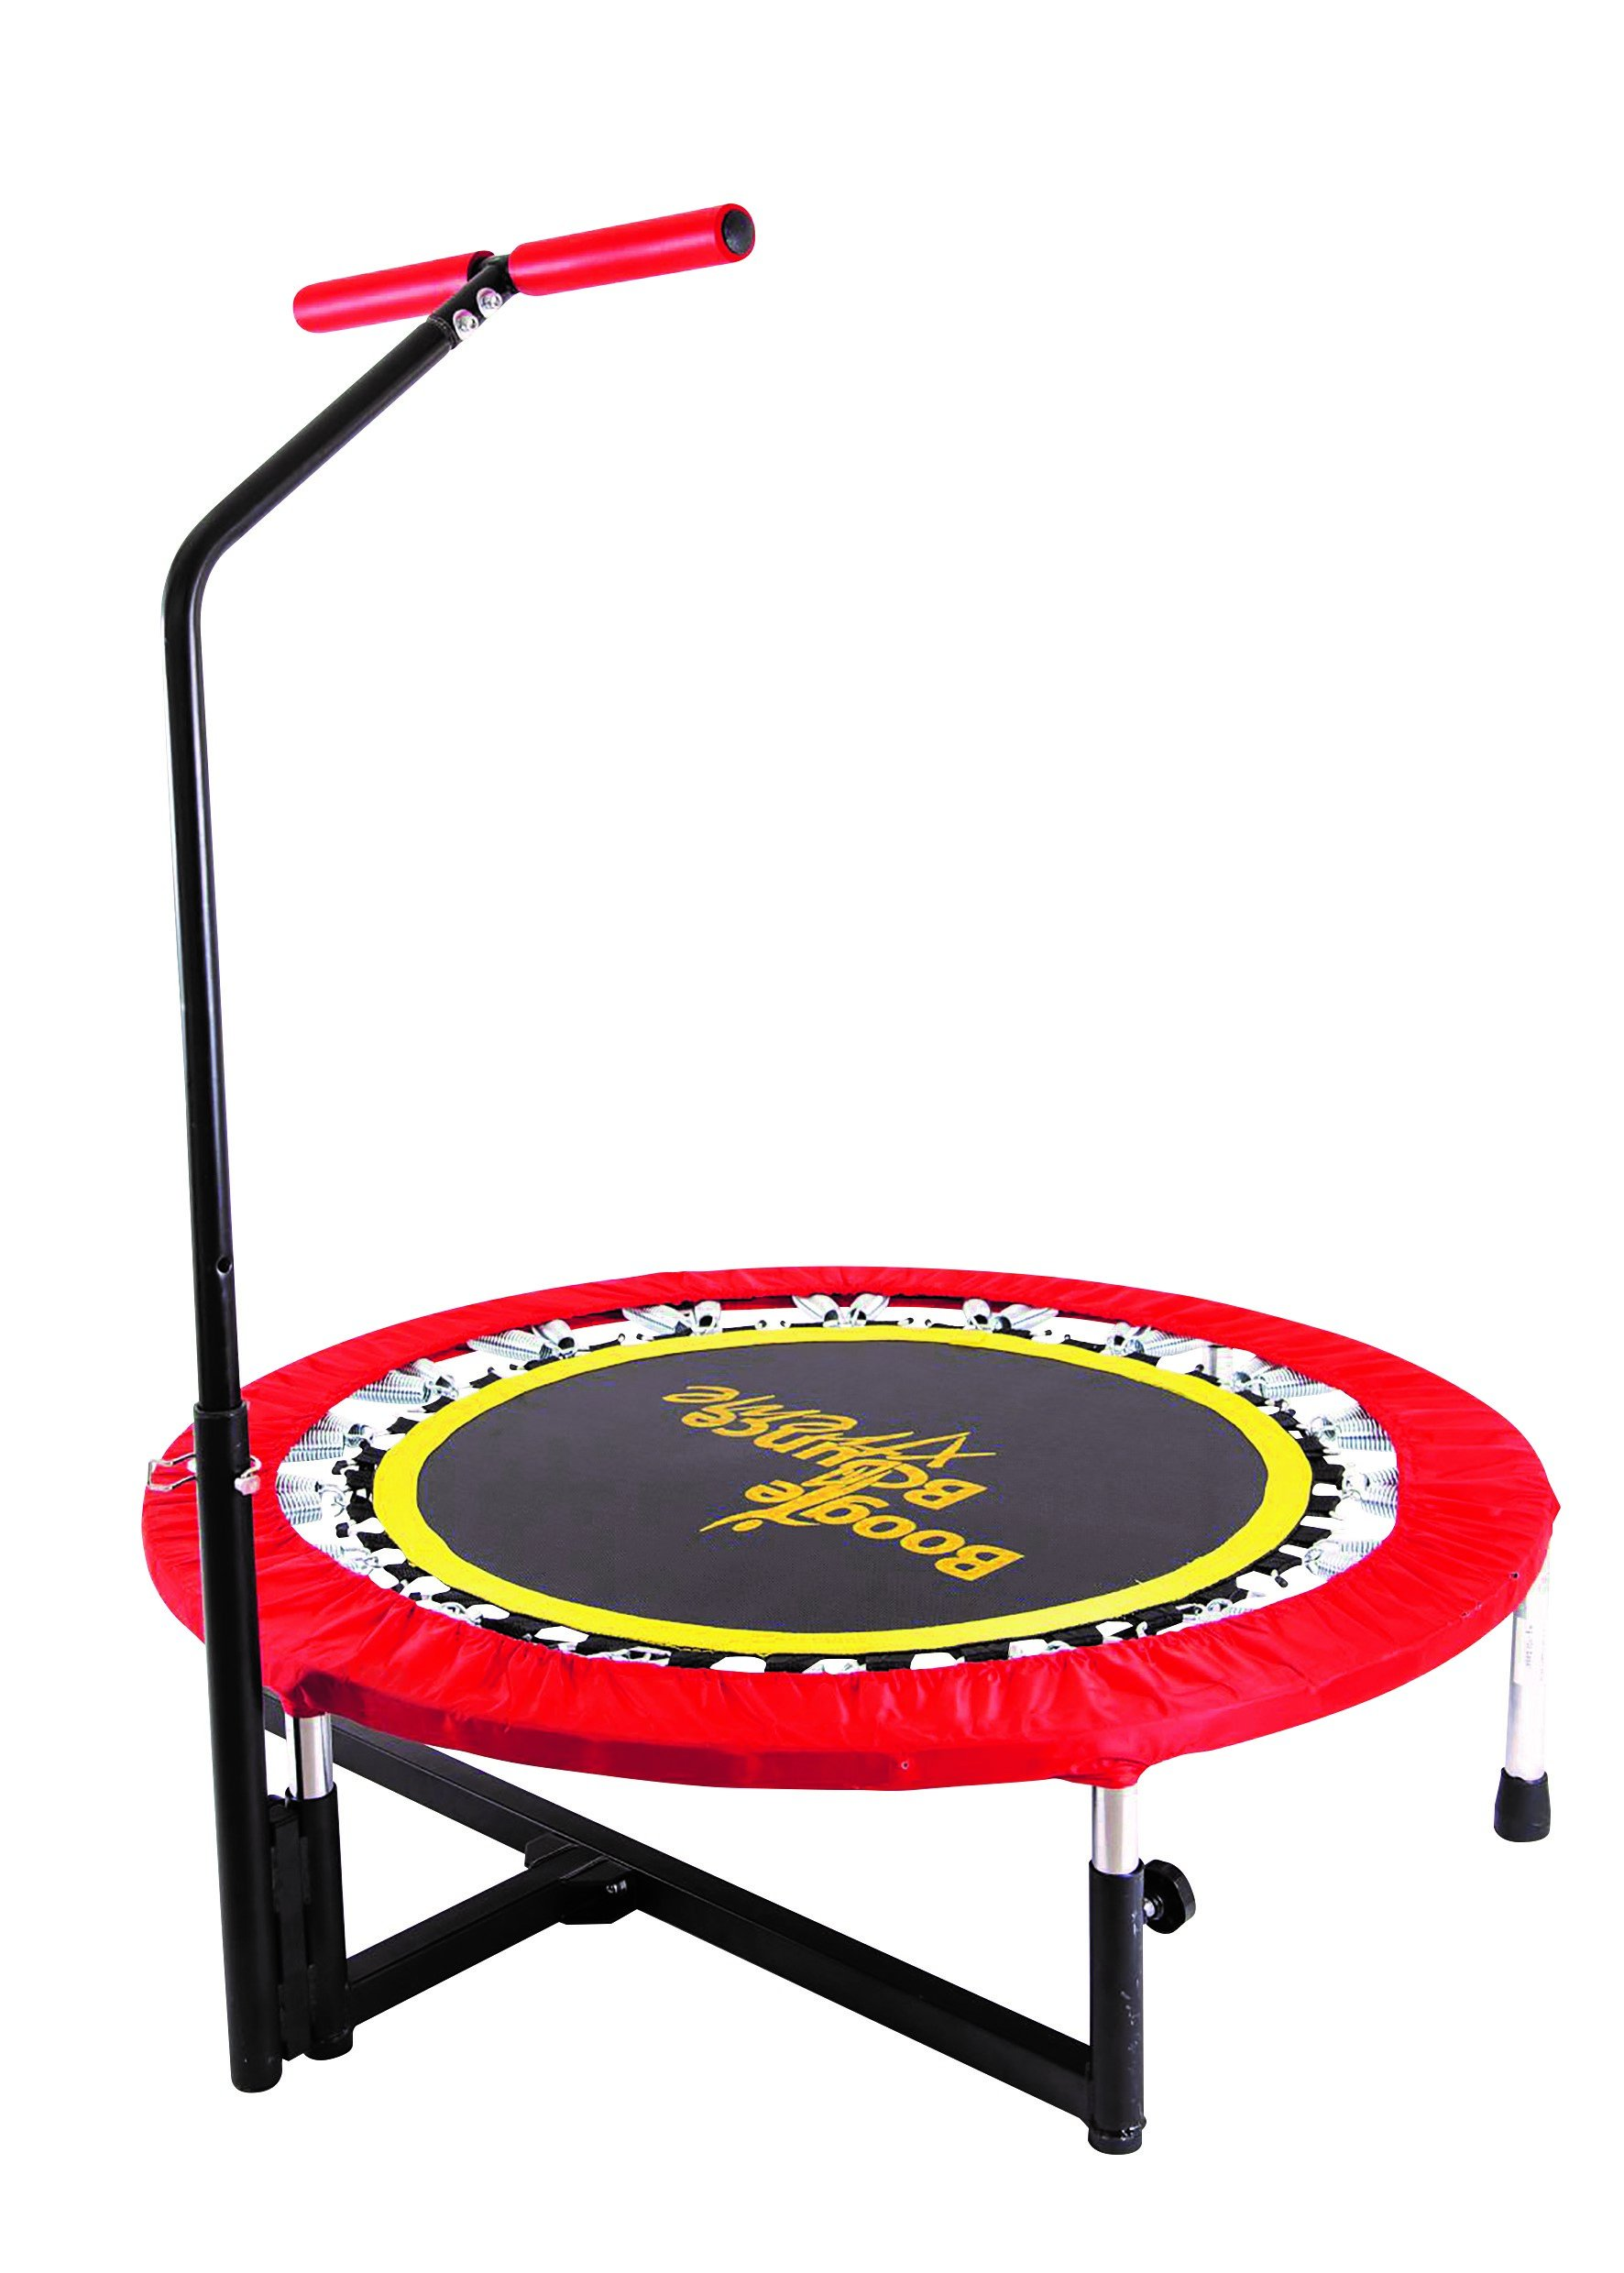 Fitness Trampoline with T-bar Handle